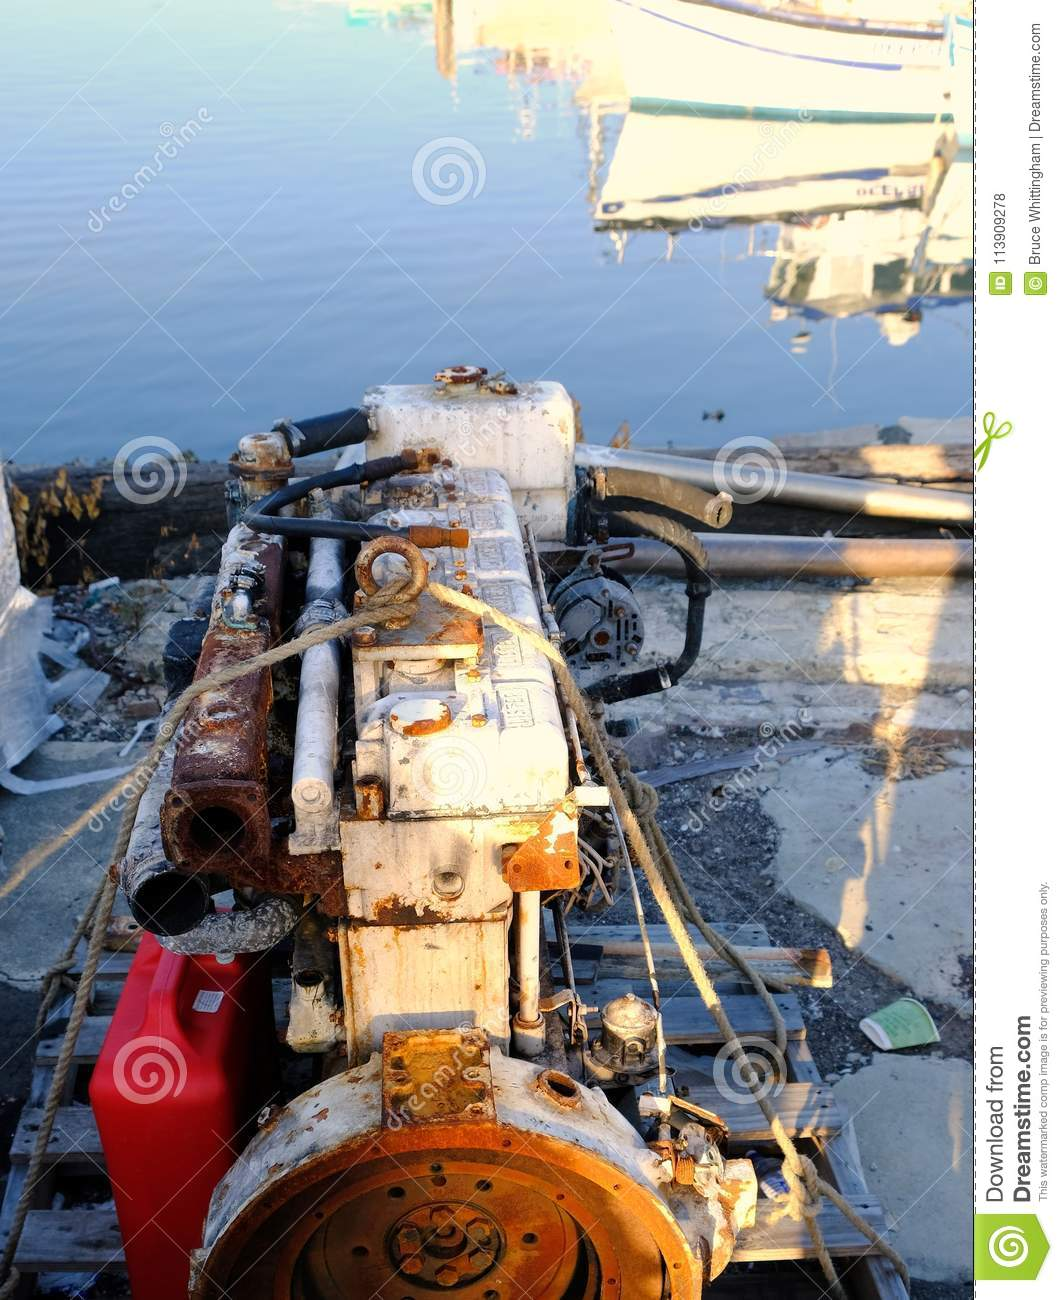 Corroded Old Lister Diesel Boat Engine In ShipYard Editorial